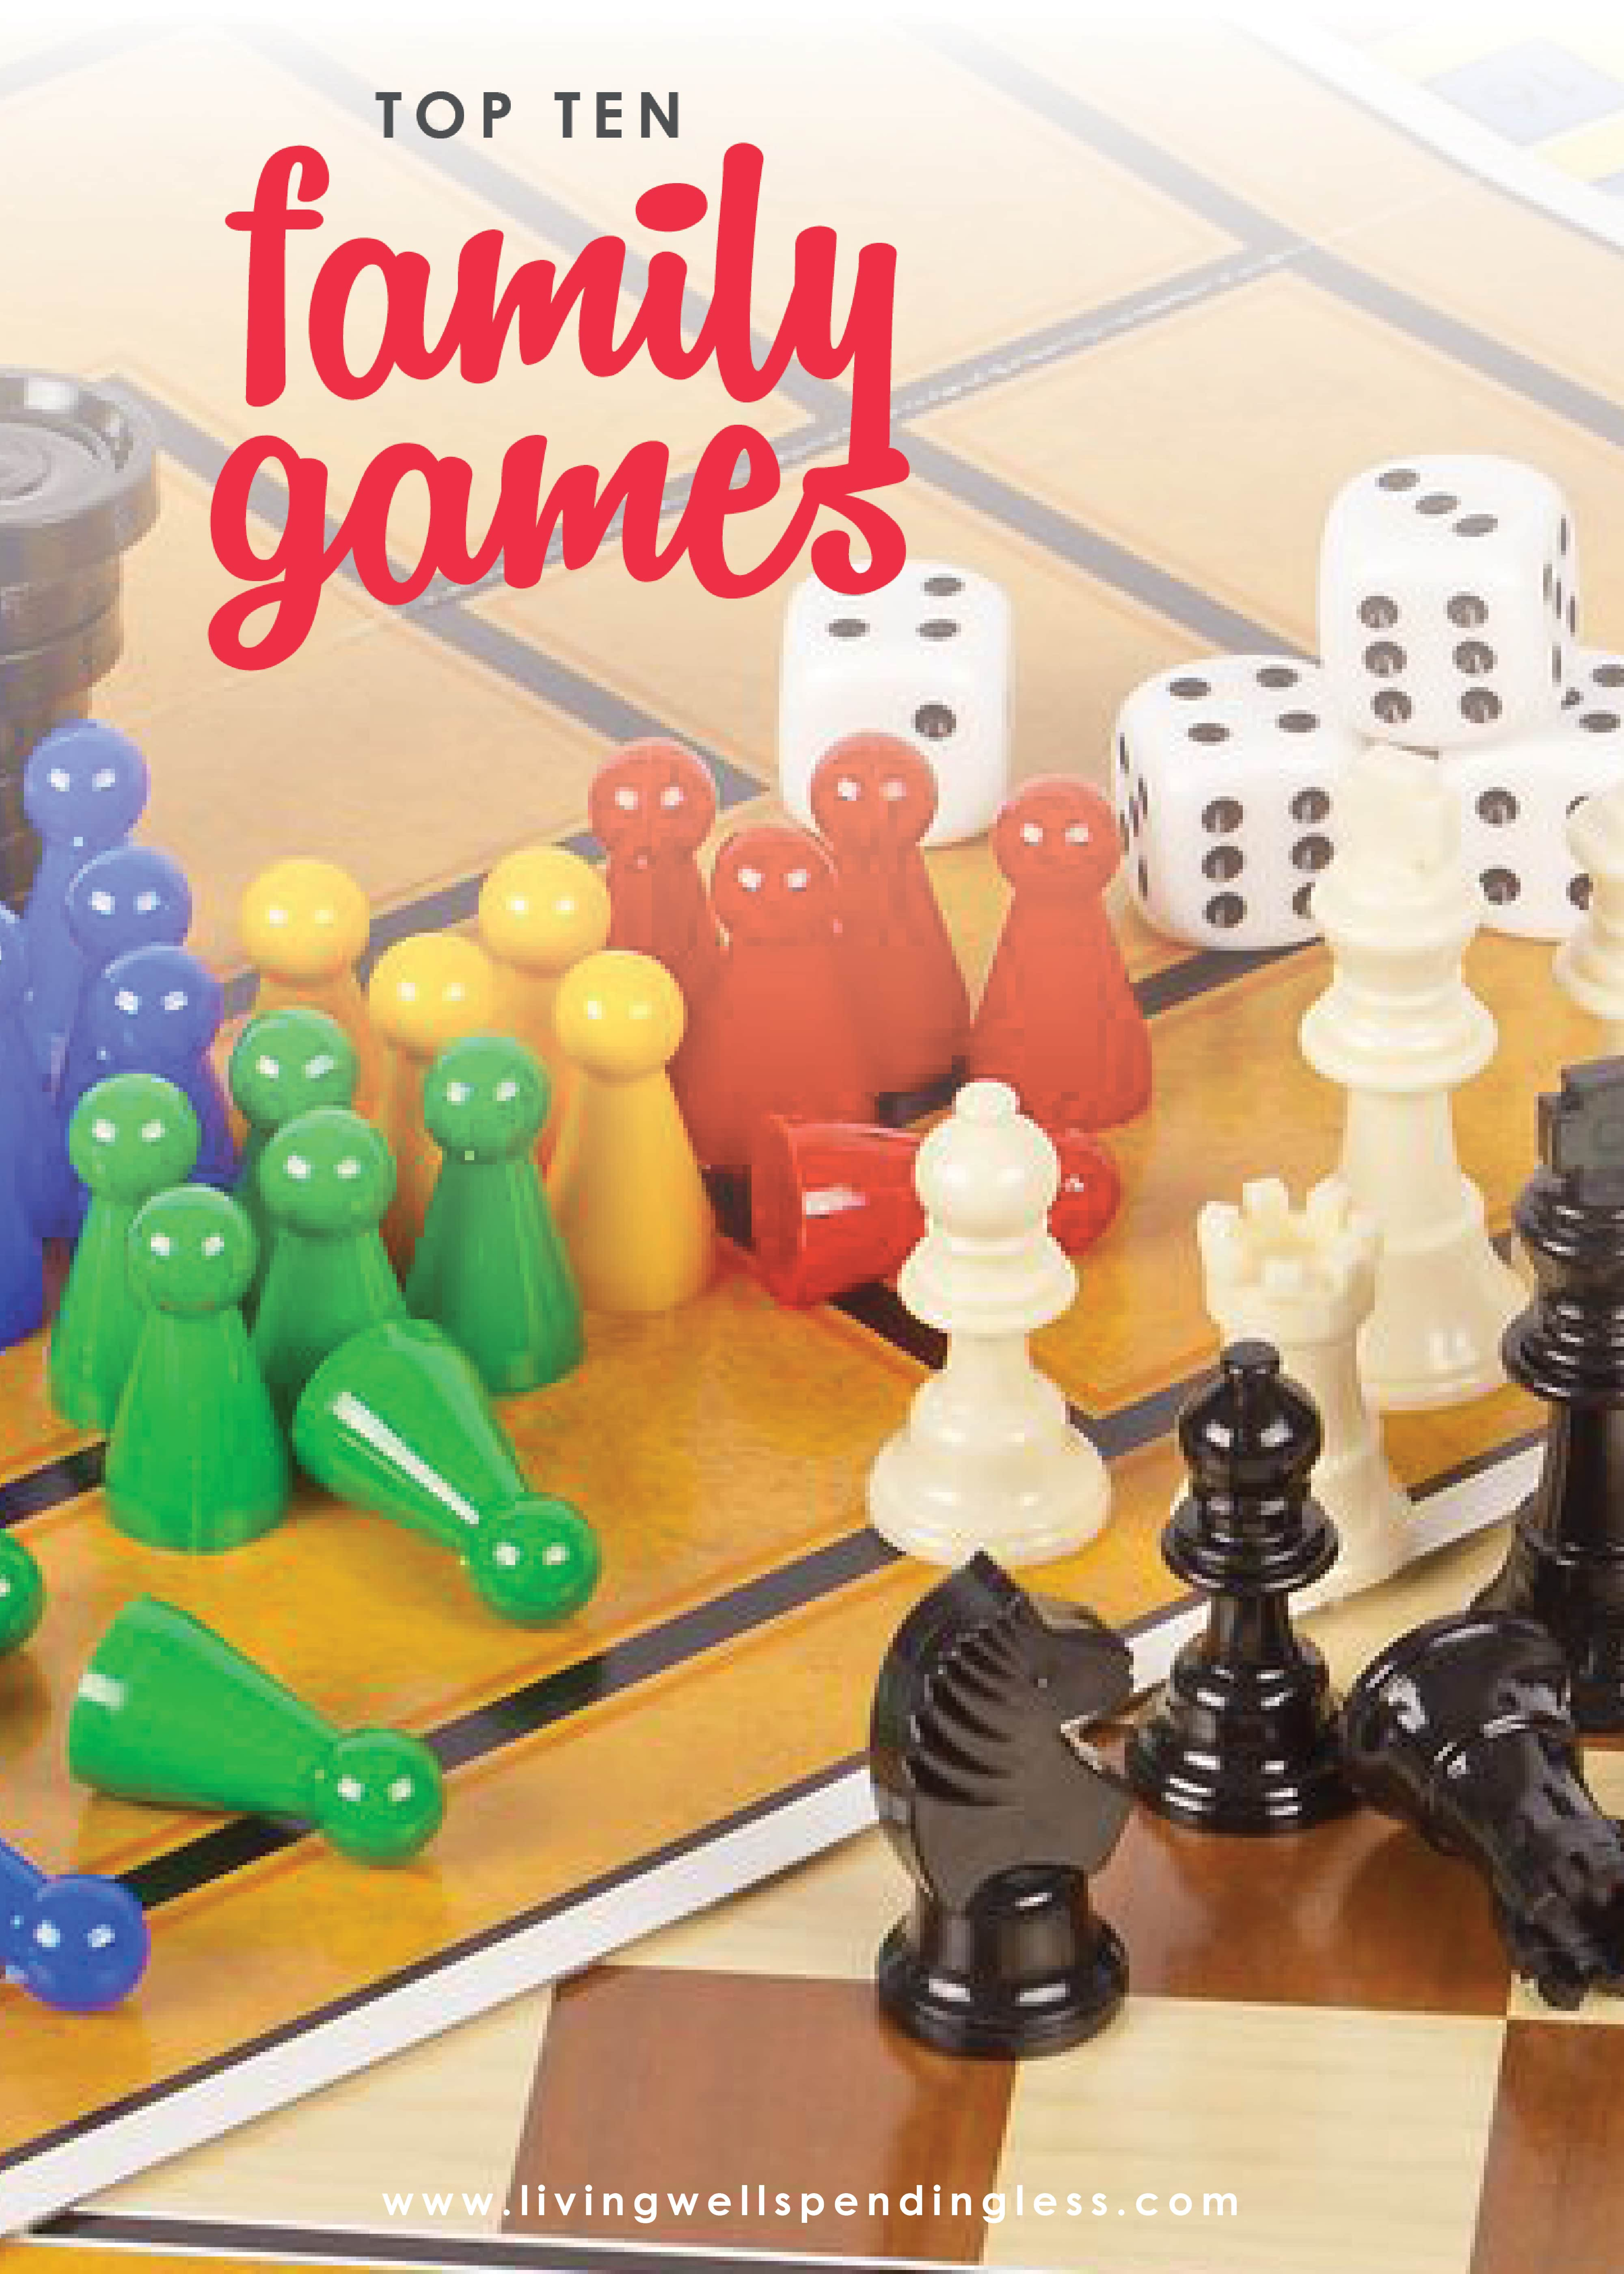 Don't miss this awesome review of 10 family games that are fun for kids (ages 7 and up) AND adults. Includes details on each games with ratings by both kids & parents. Need a few new ideas for family game night or some surefire-hit Christmas gift ideas? Don't miss this awesome review of 10 family games that are fun for kids (ages 7 and up) AND adults. Includes details on each games with ratings by both kids & parents. Need a few new ideas for family game night or some surefire-hit Christmas gift ideas? Don't miss this awesome review of ten wonderful family games that are fun for kids (ages 7 and up) AND adults. Includes details on each games with ratings by both kids & parents. It's a must-read for every parent, grandparent and babysitter!